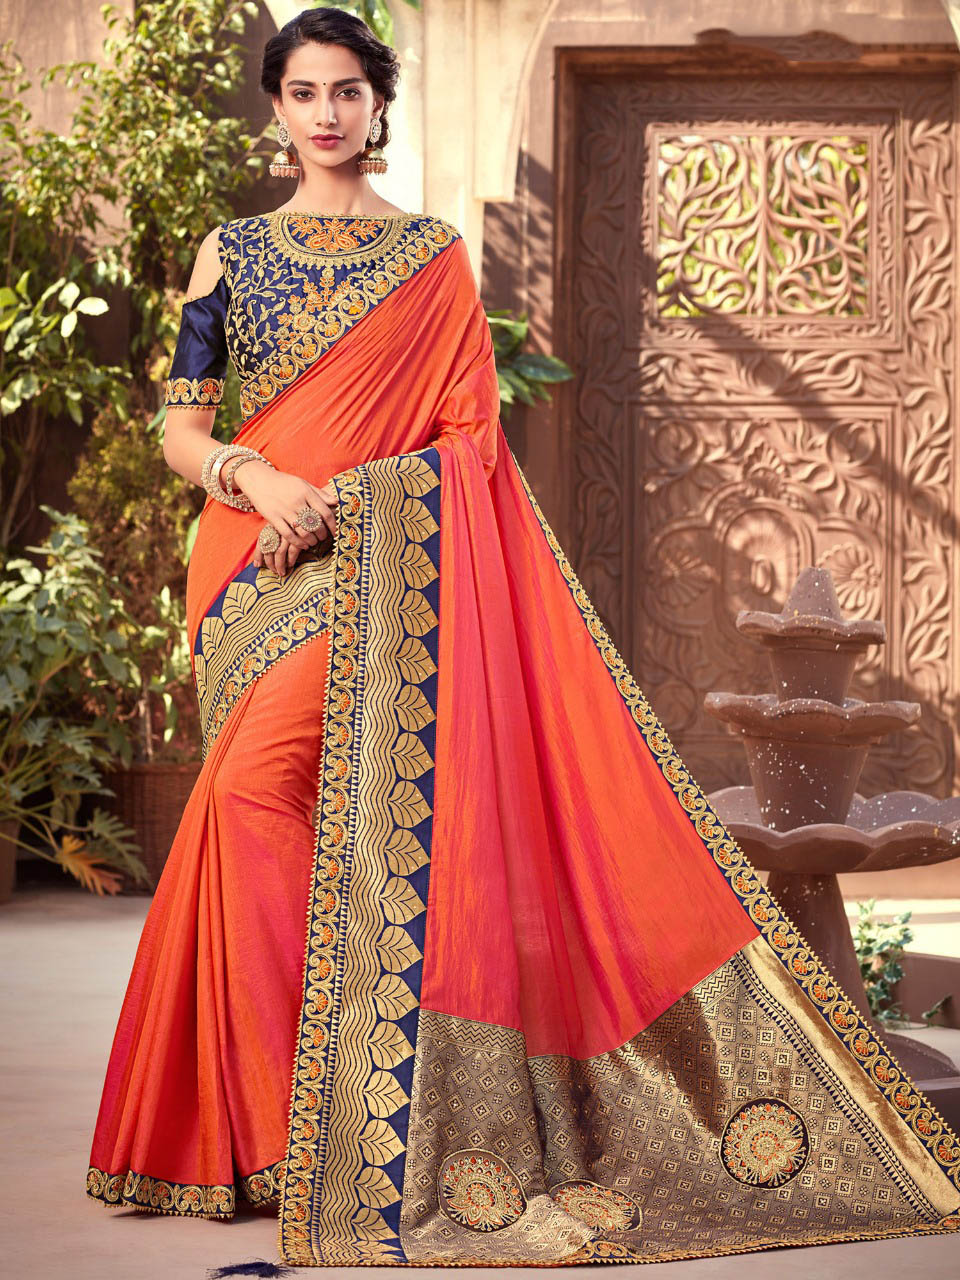 PARTY WEAR INDIAN SILK SAREE - BT-SR-40023 - $104.99